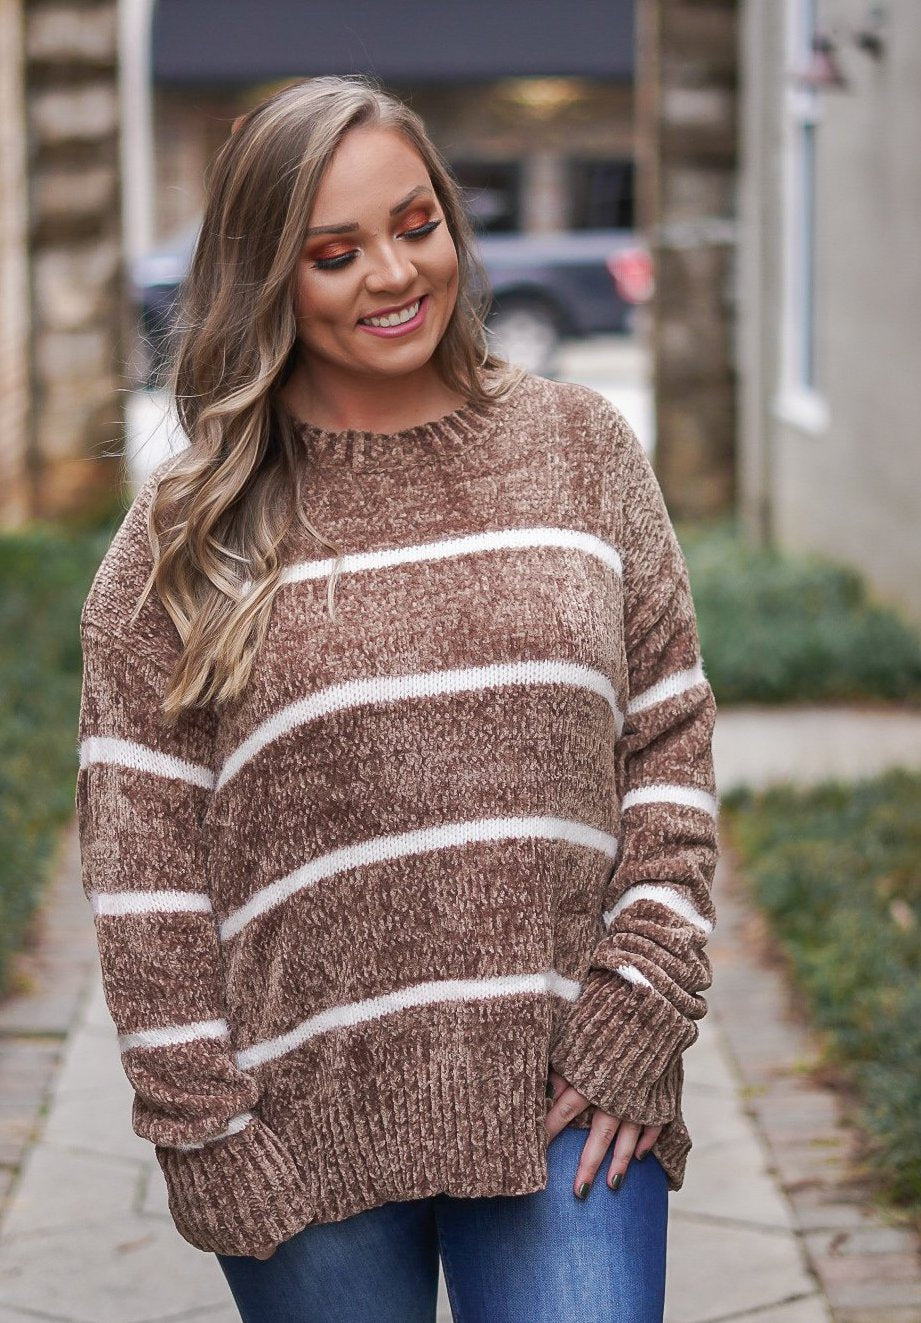 Vanilla Bean Noelle Sweater